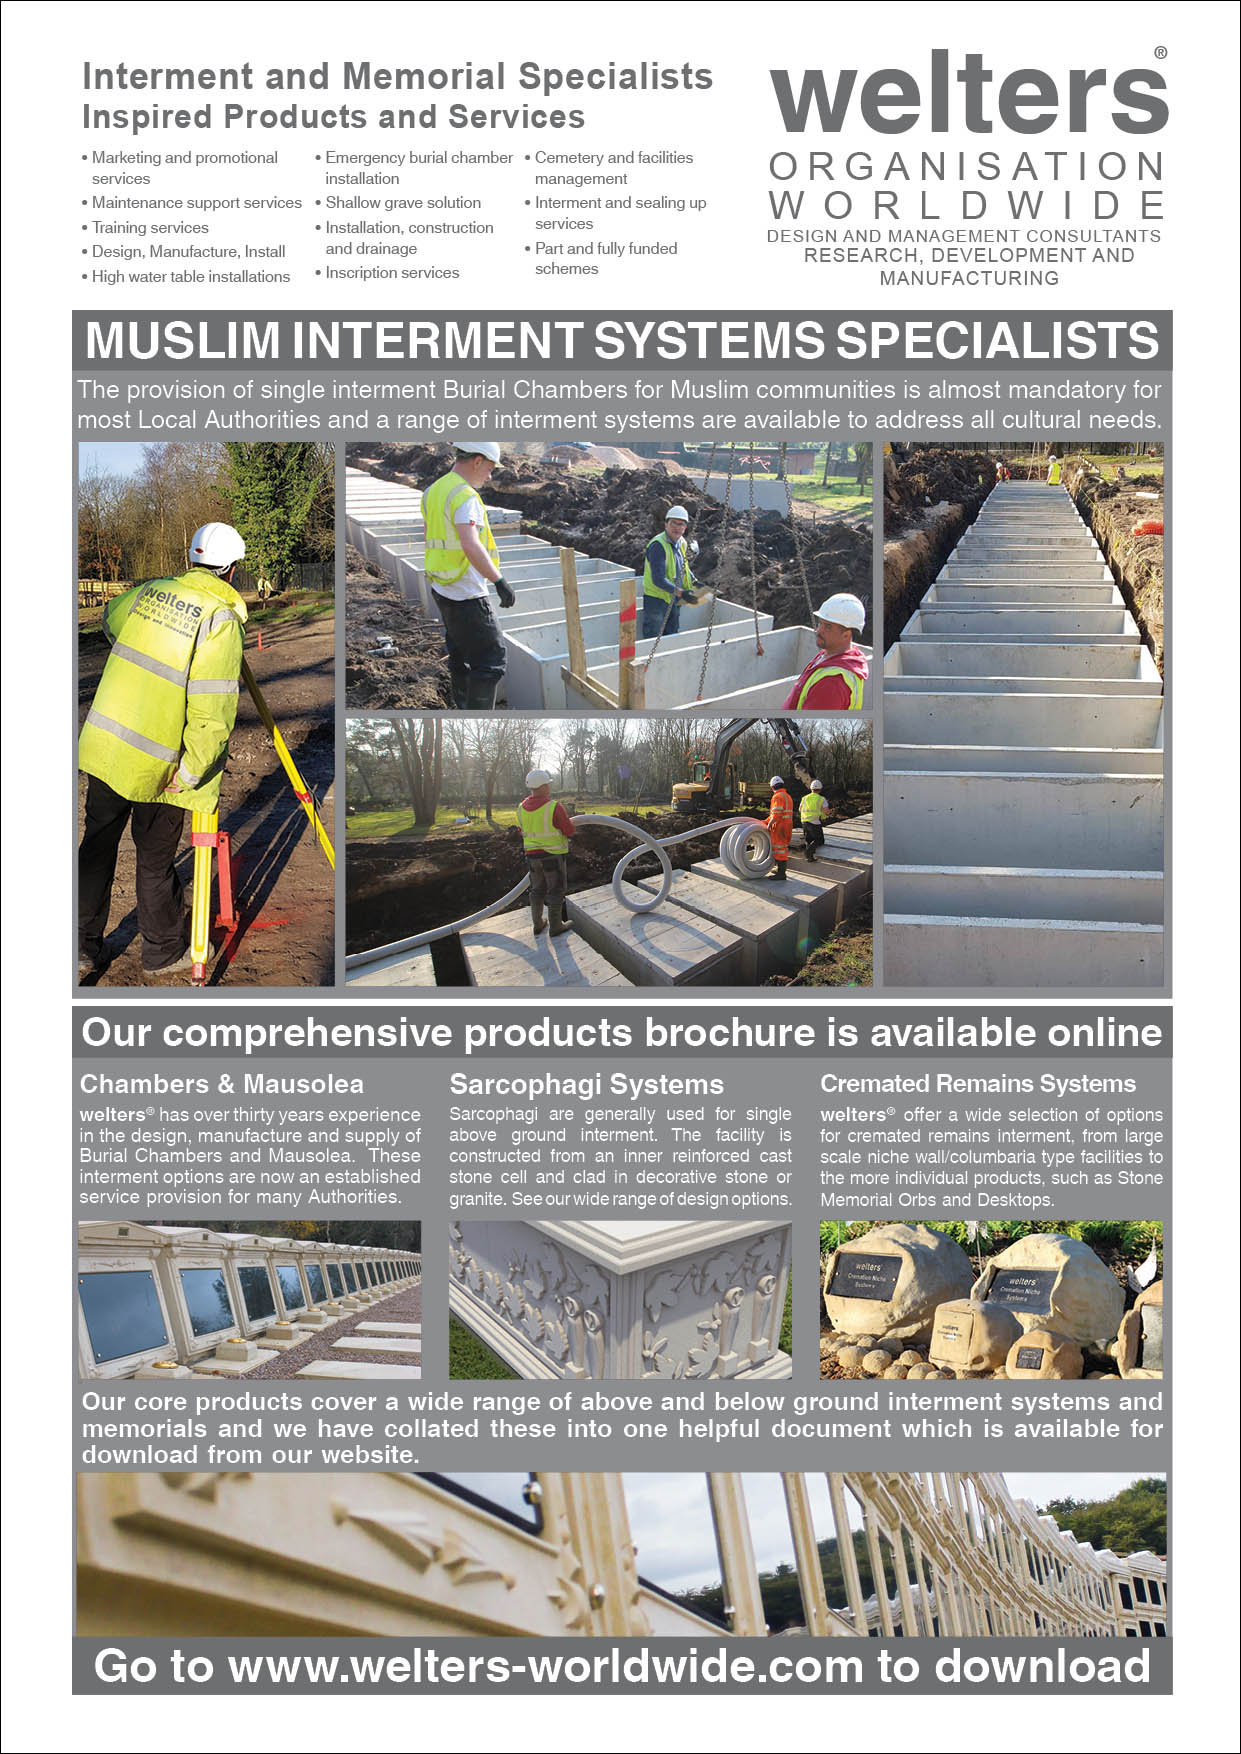 welters Interment Systems Specialists